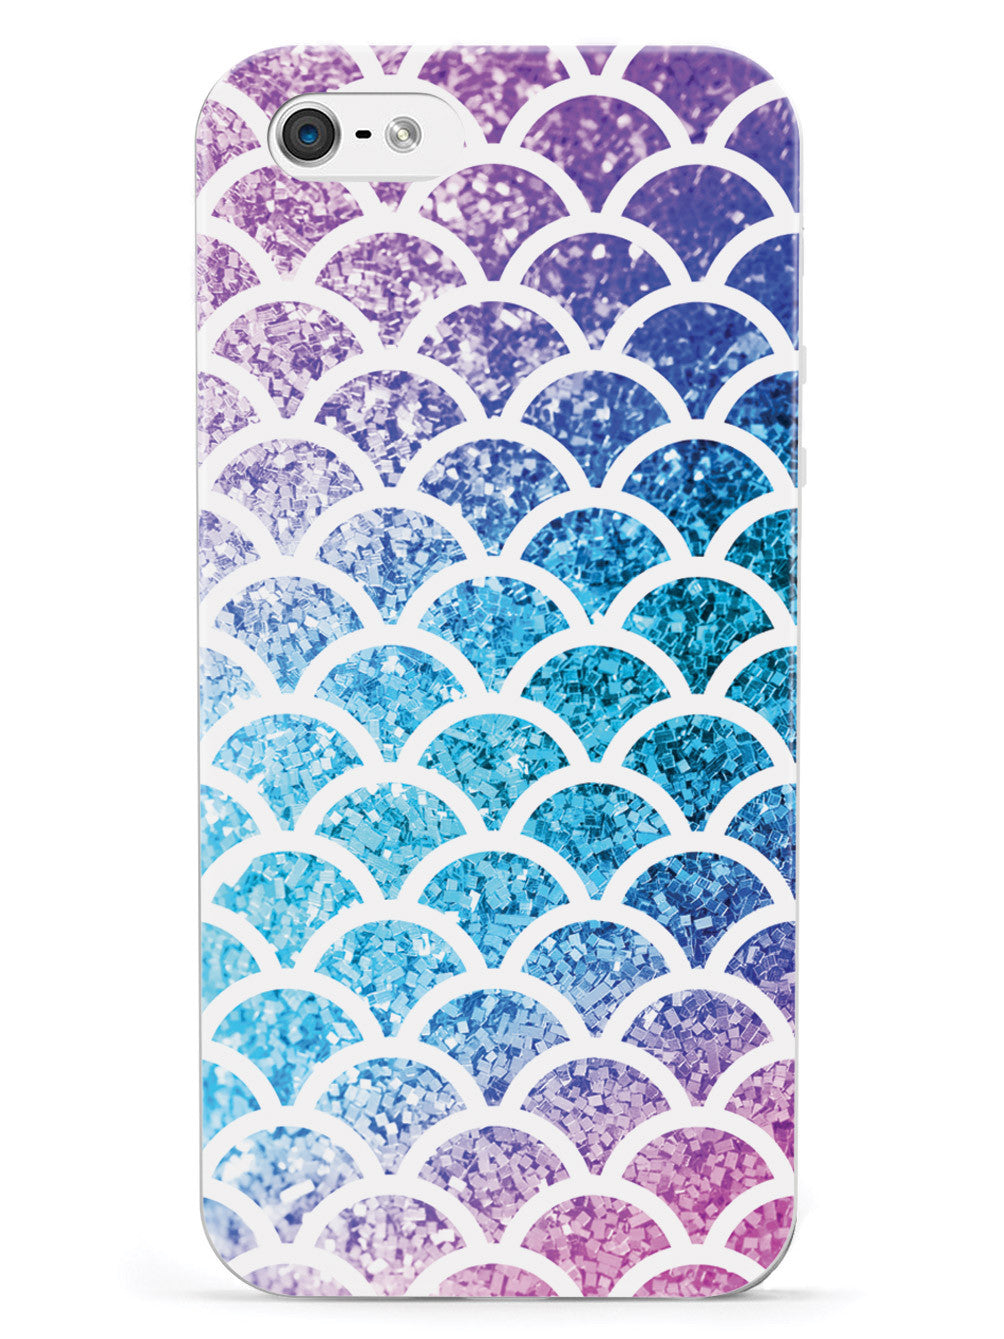 Mermaid Scales - Rainbow Case